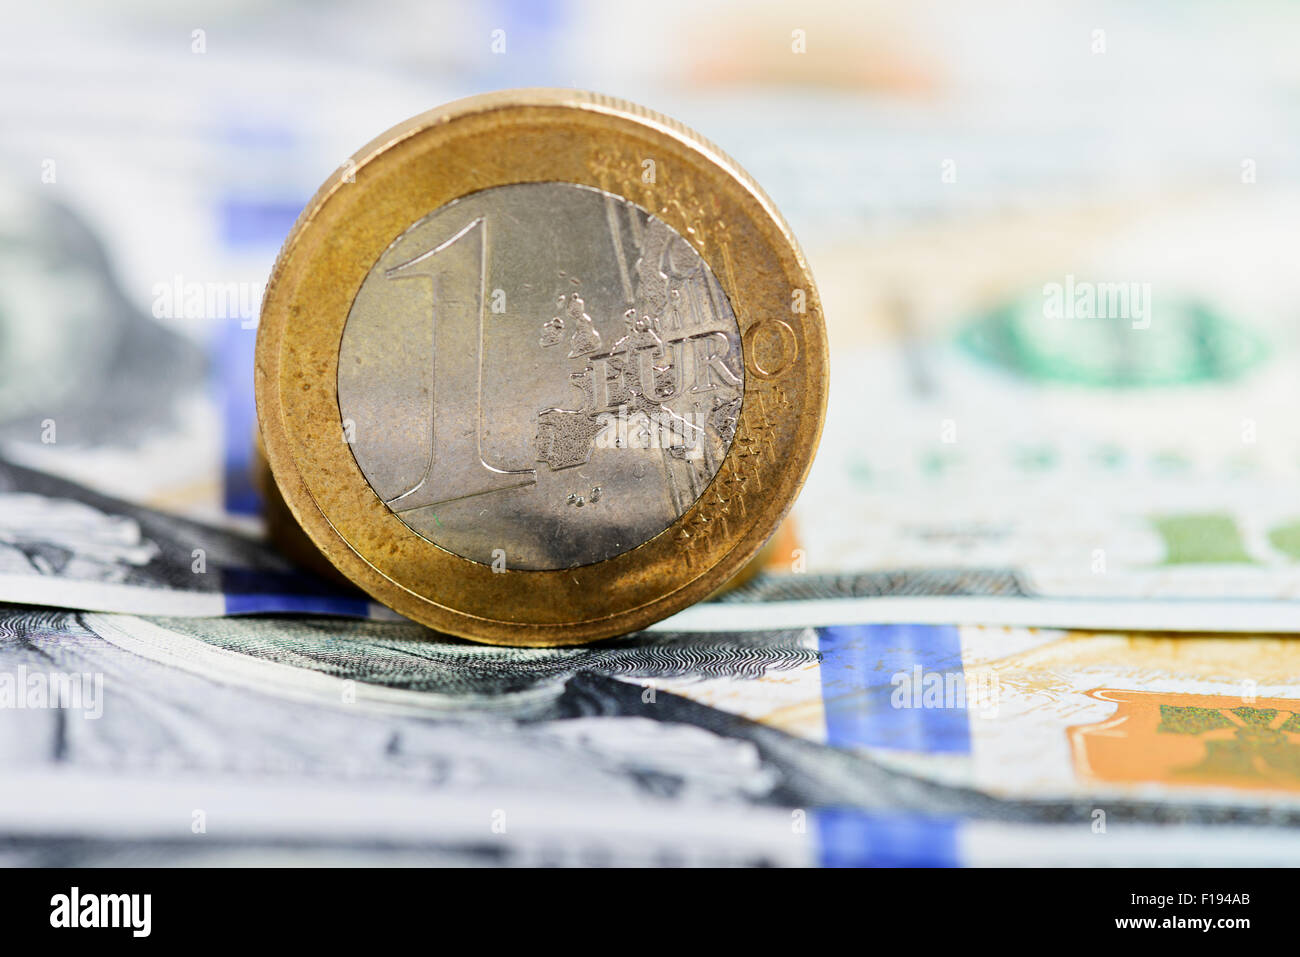 euro coin on money background - Stock Image